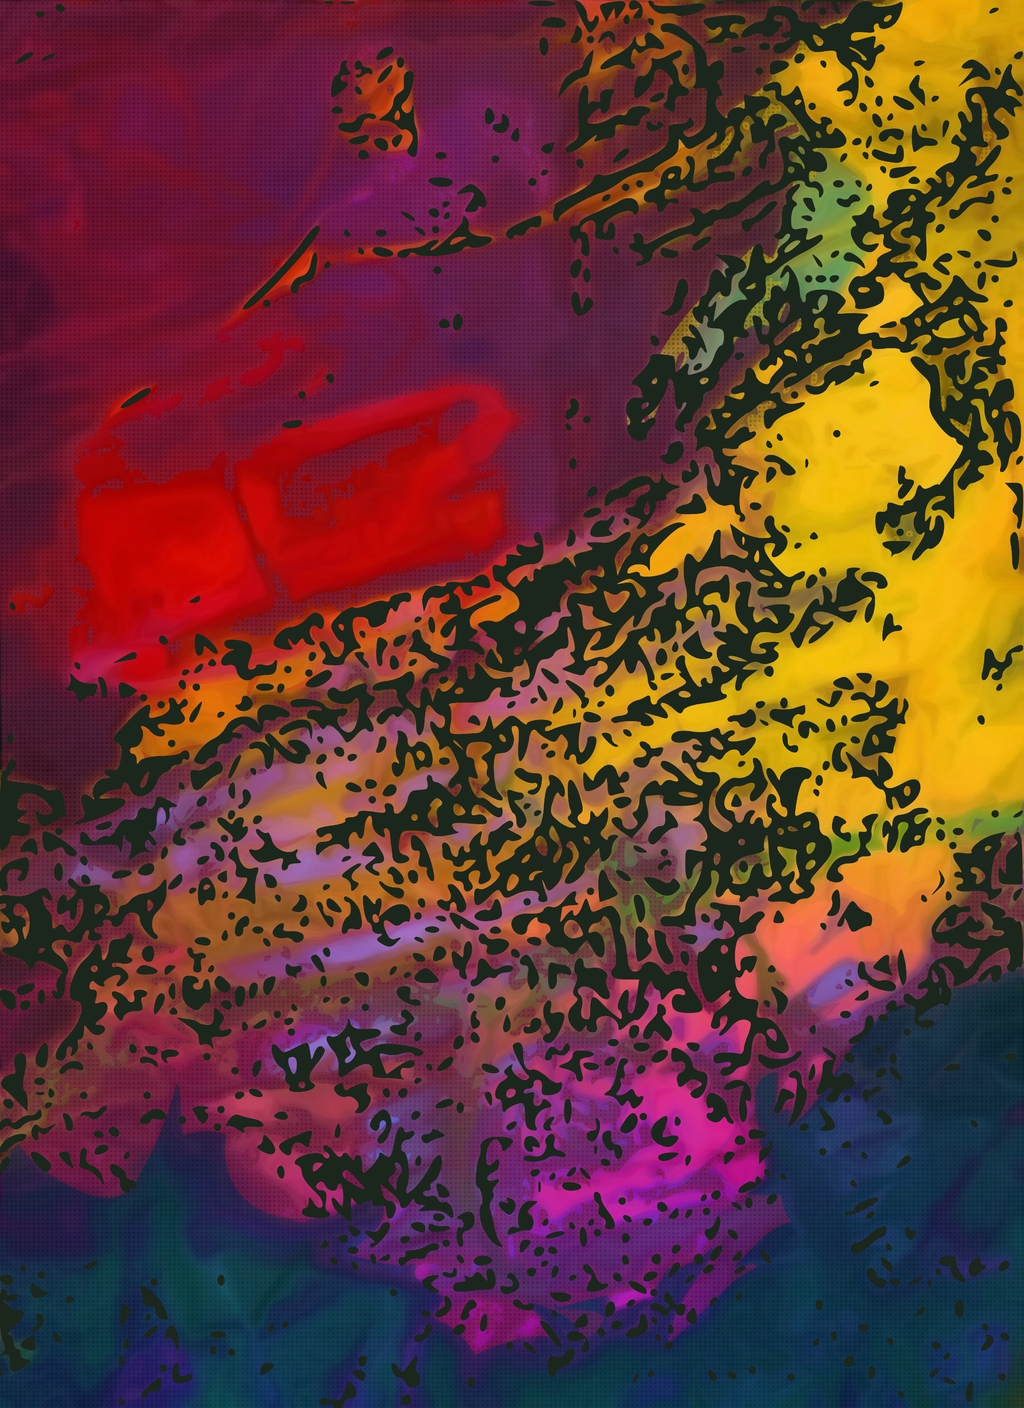 Wallpapers Background: Abstract Art Painting | Wallpapers